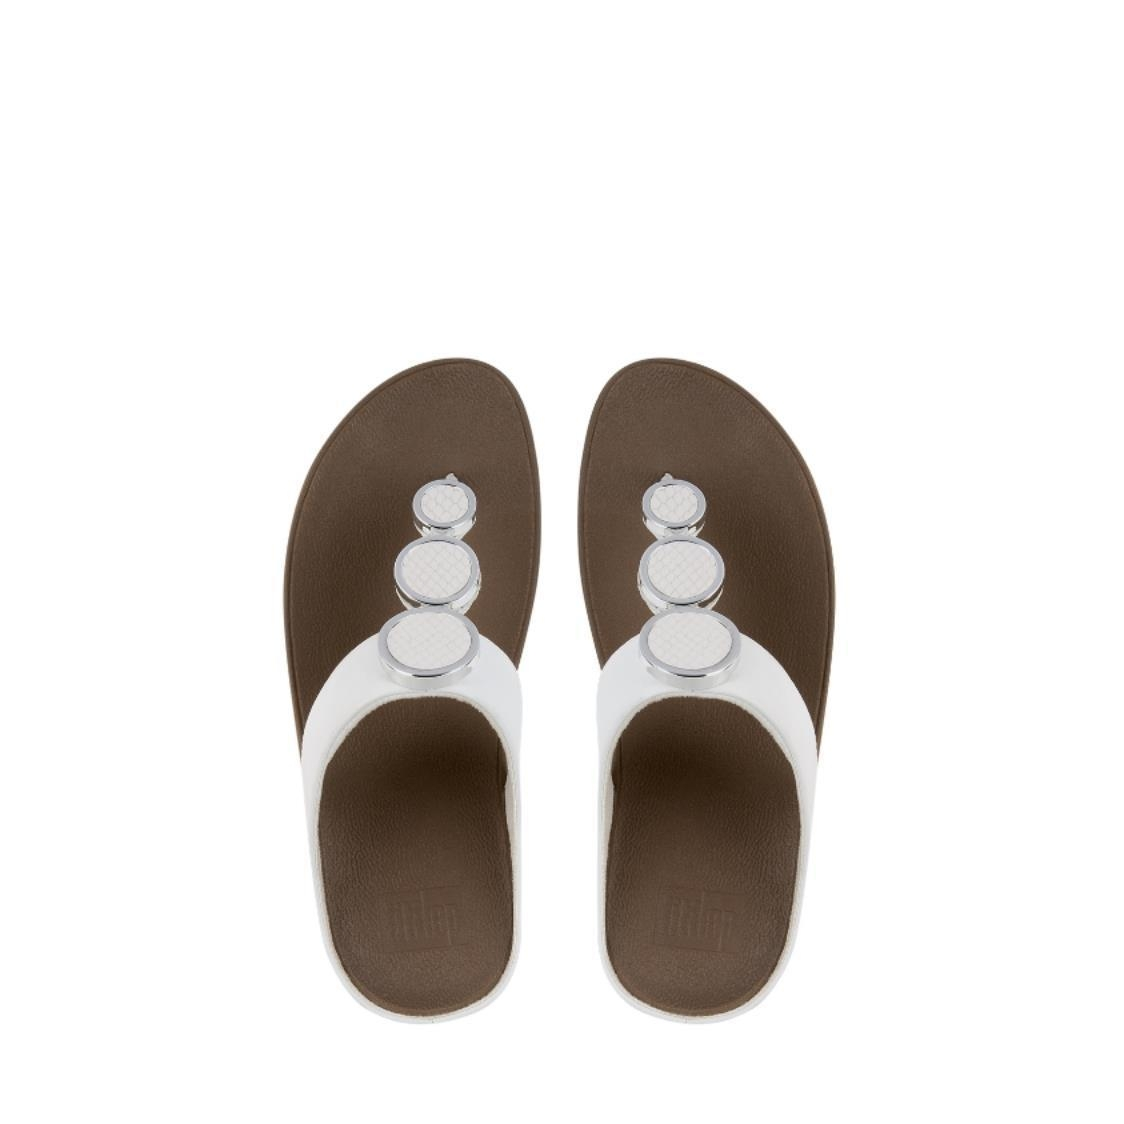 Halo Leather Toe-Thong Sandals Urban White